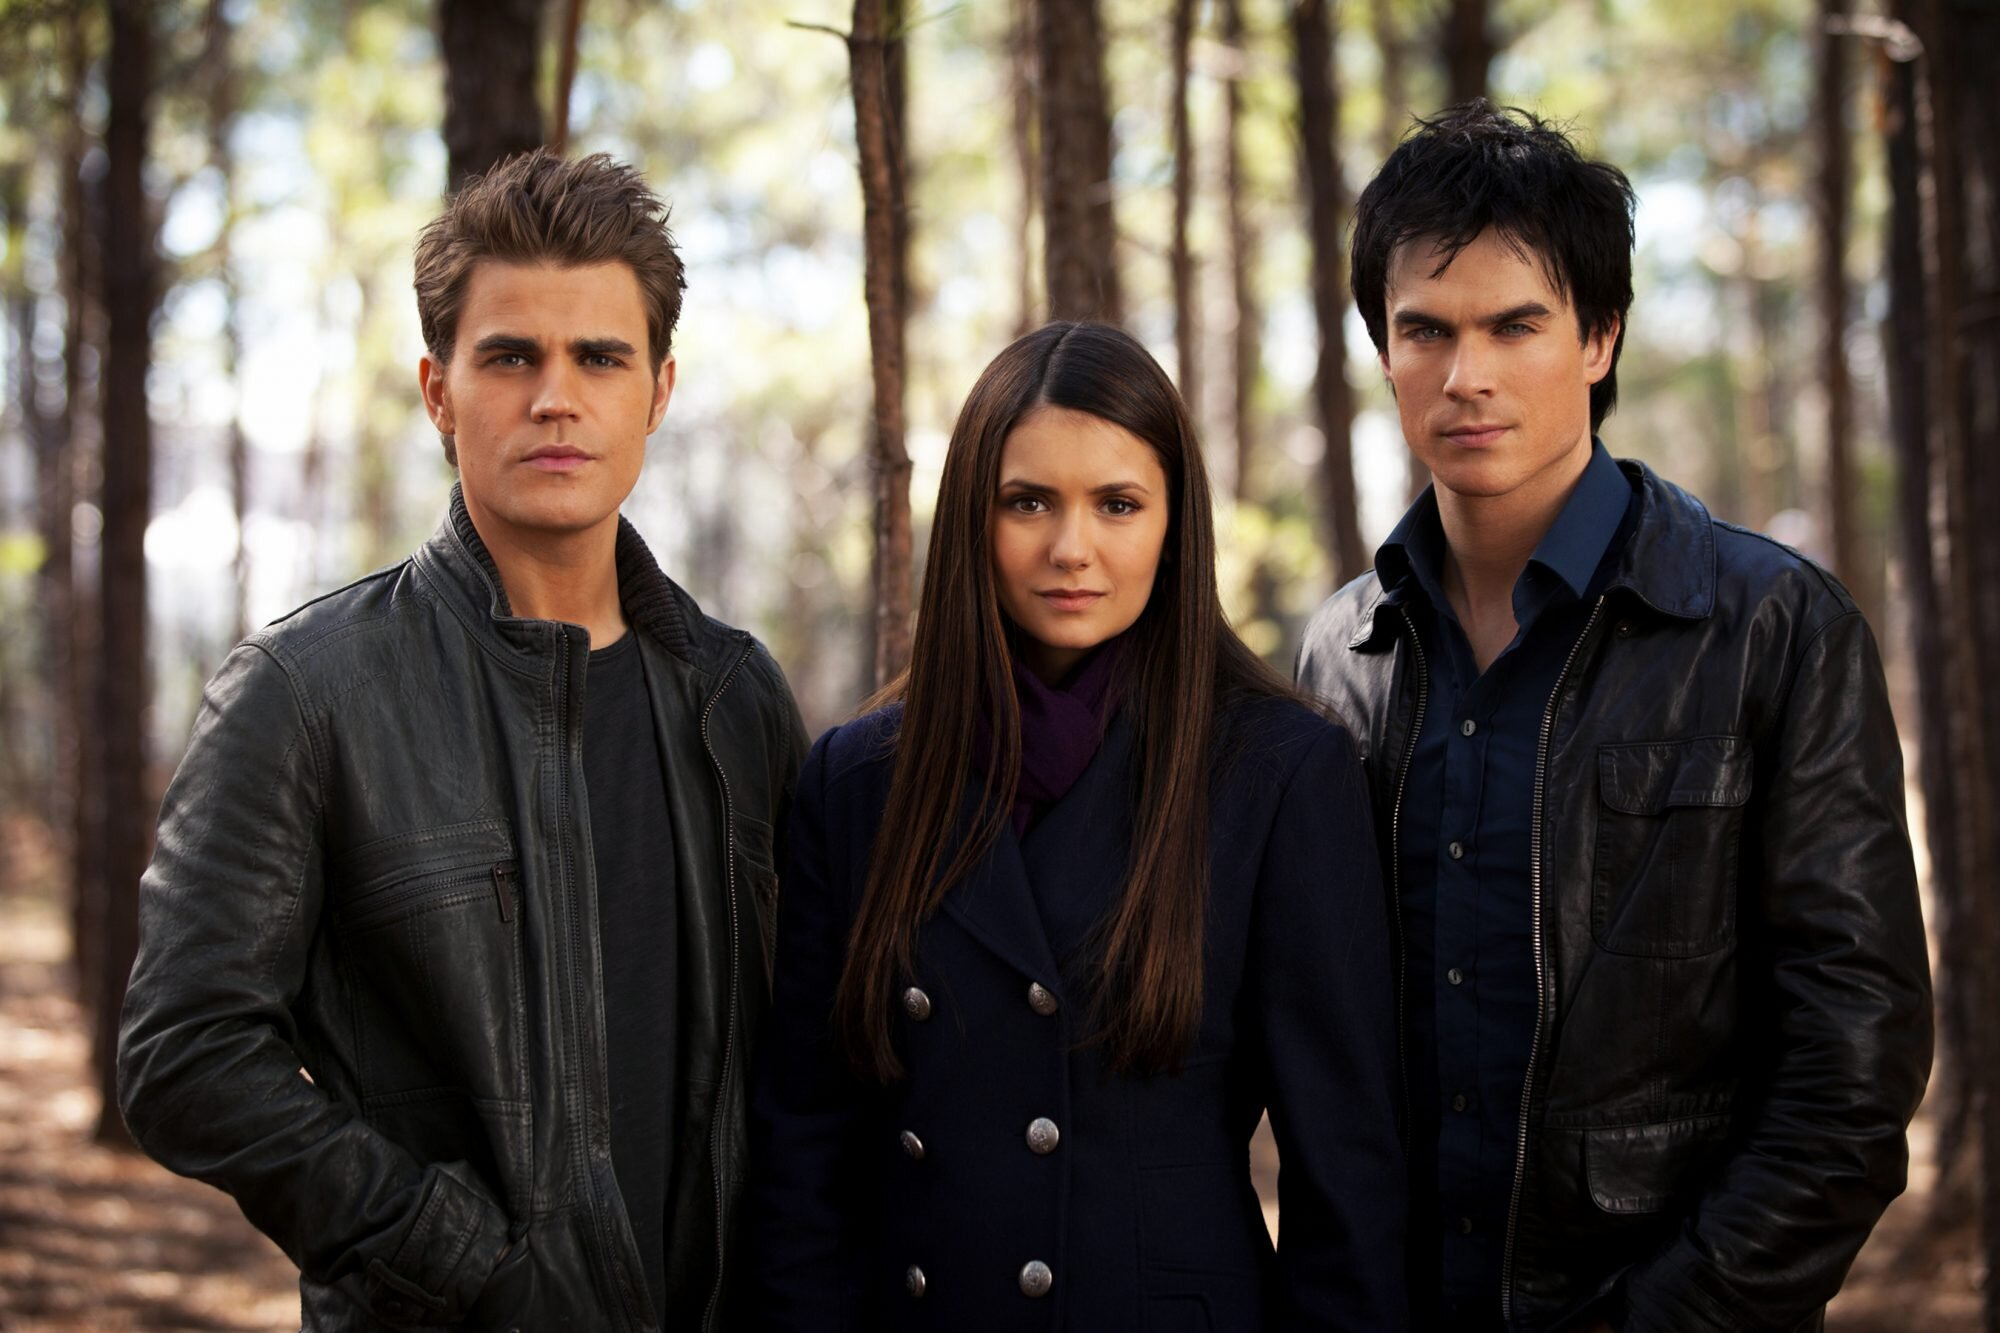 TVD Ending Explained: What happened to Damon and Elena?